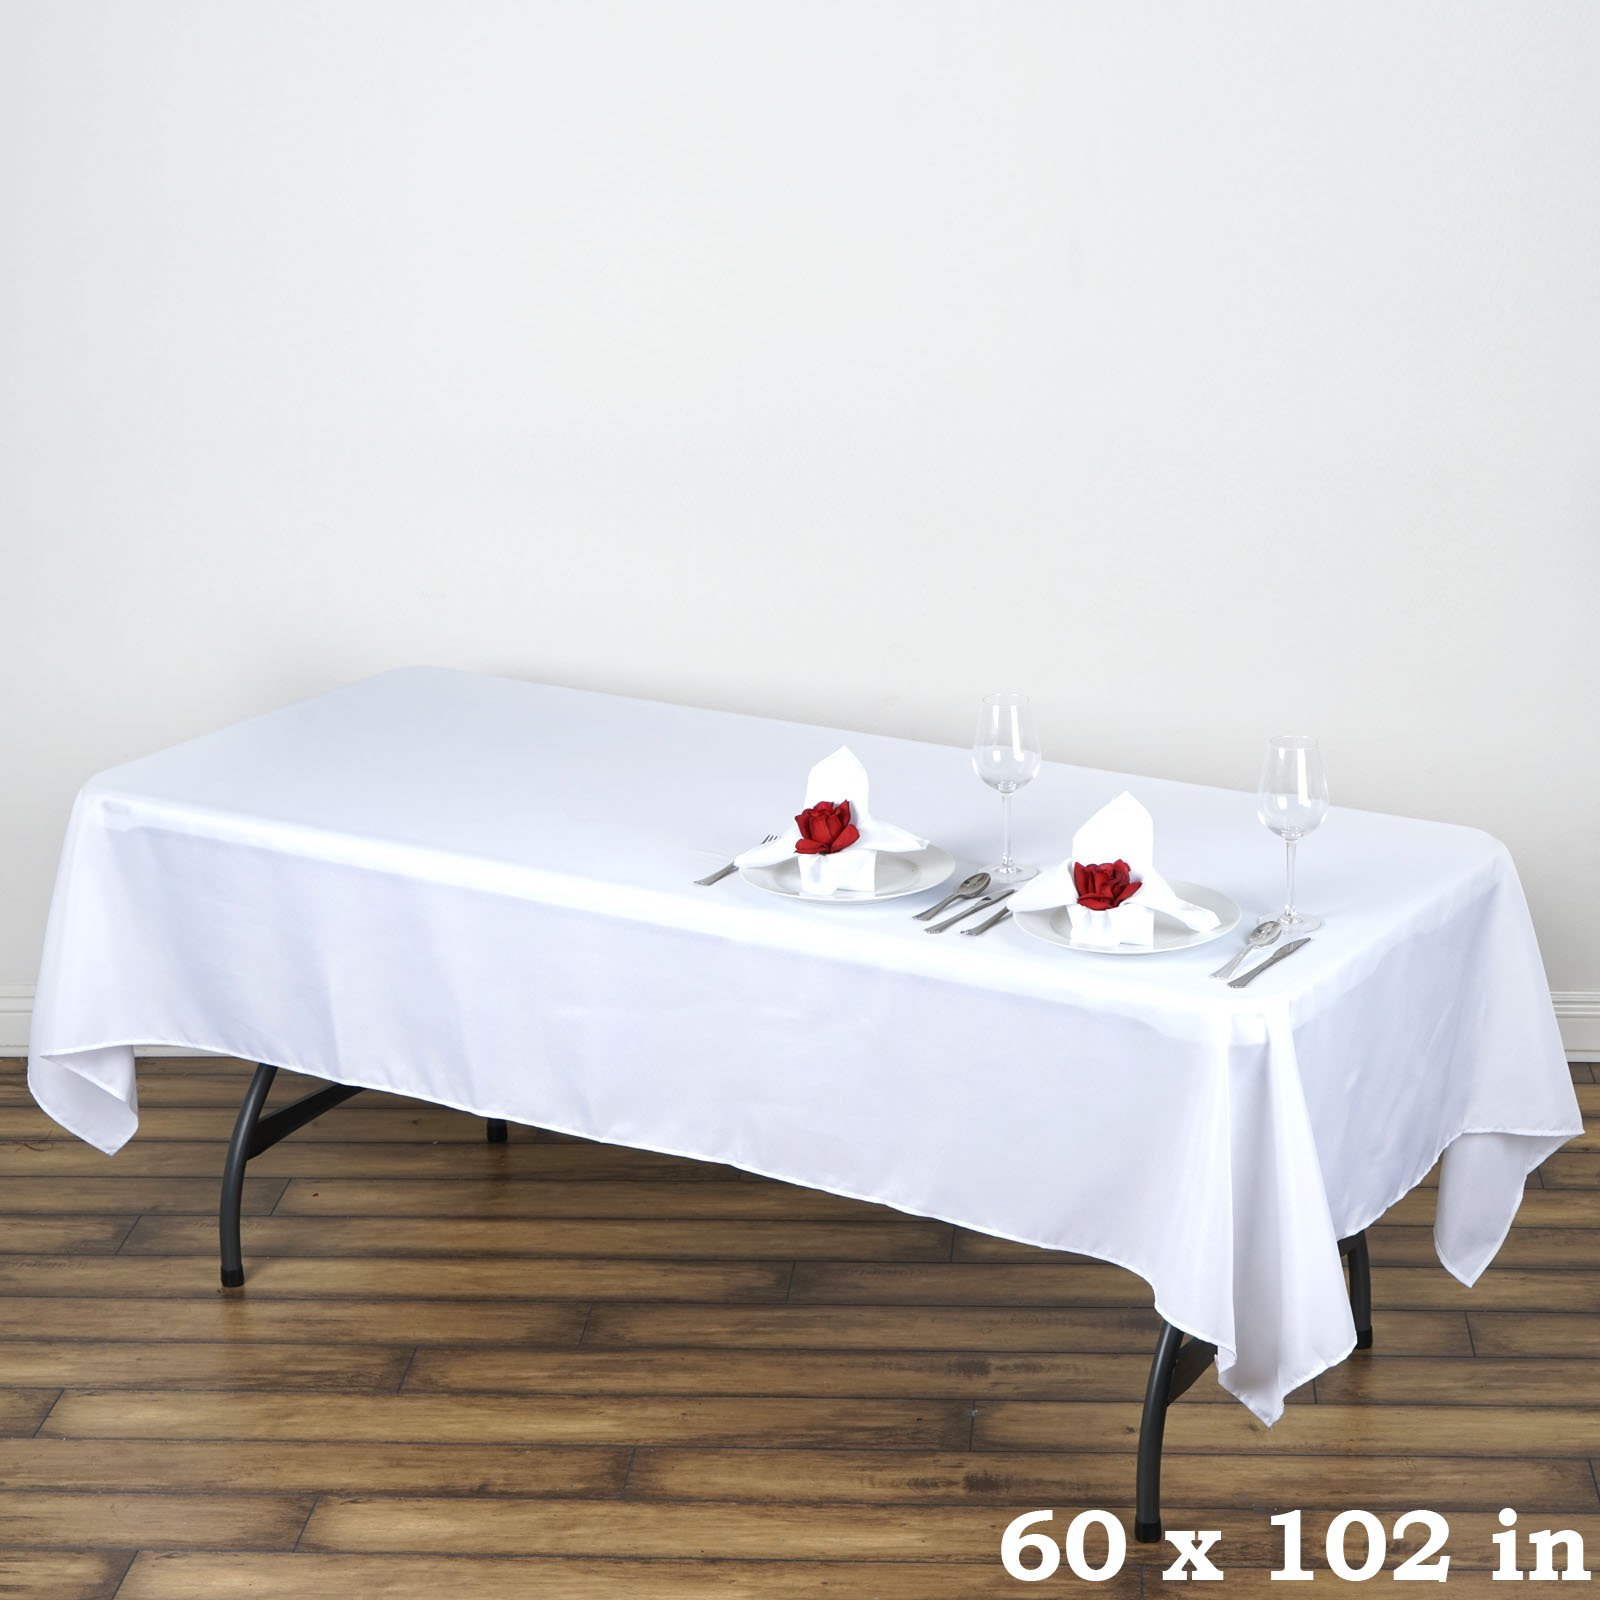 Efavormart 5pcs of White 60x102 Polyester Rectangle Tablecloths Banquet Linen Wedding Party Restaurant Tablecloth by Efavormart